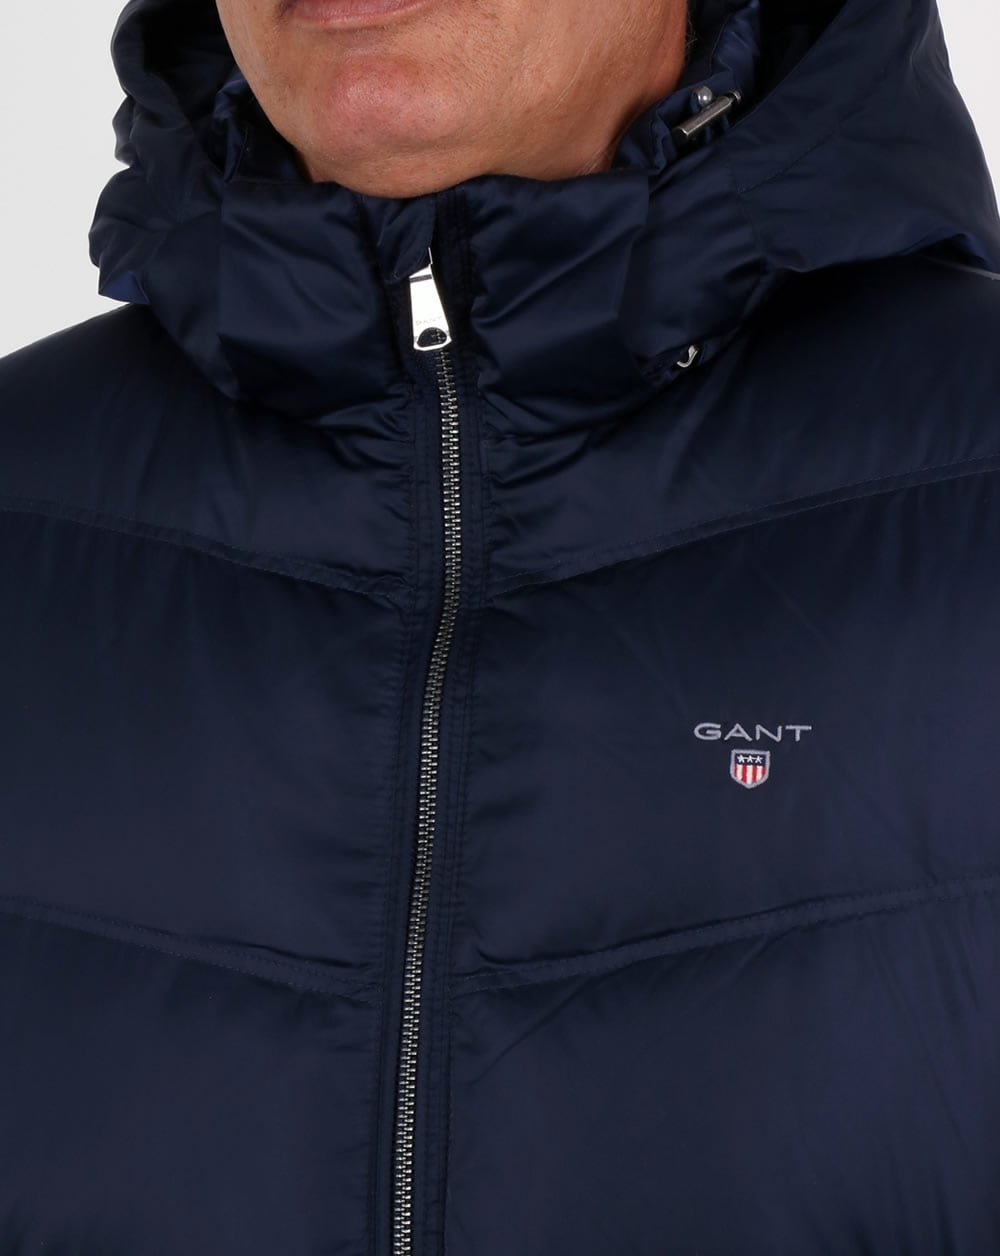 Gant Winter Jackets gant down filled padded jacket marine blue VBQYWMS